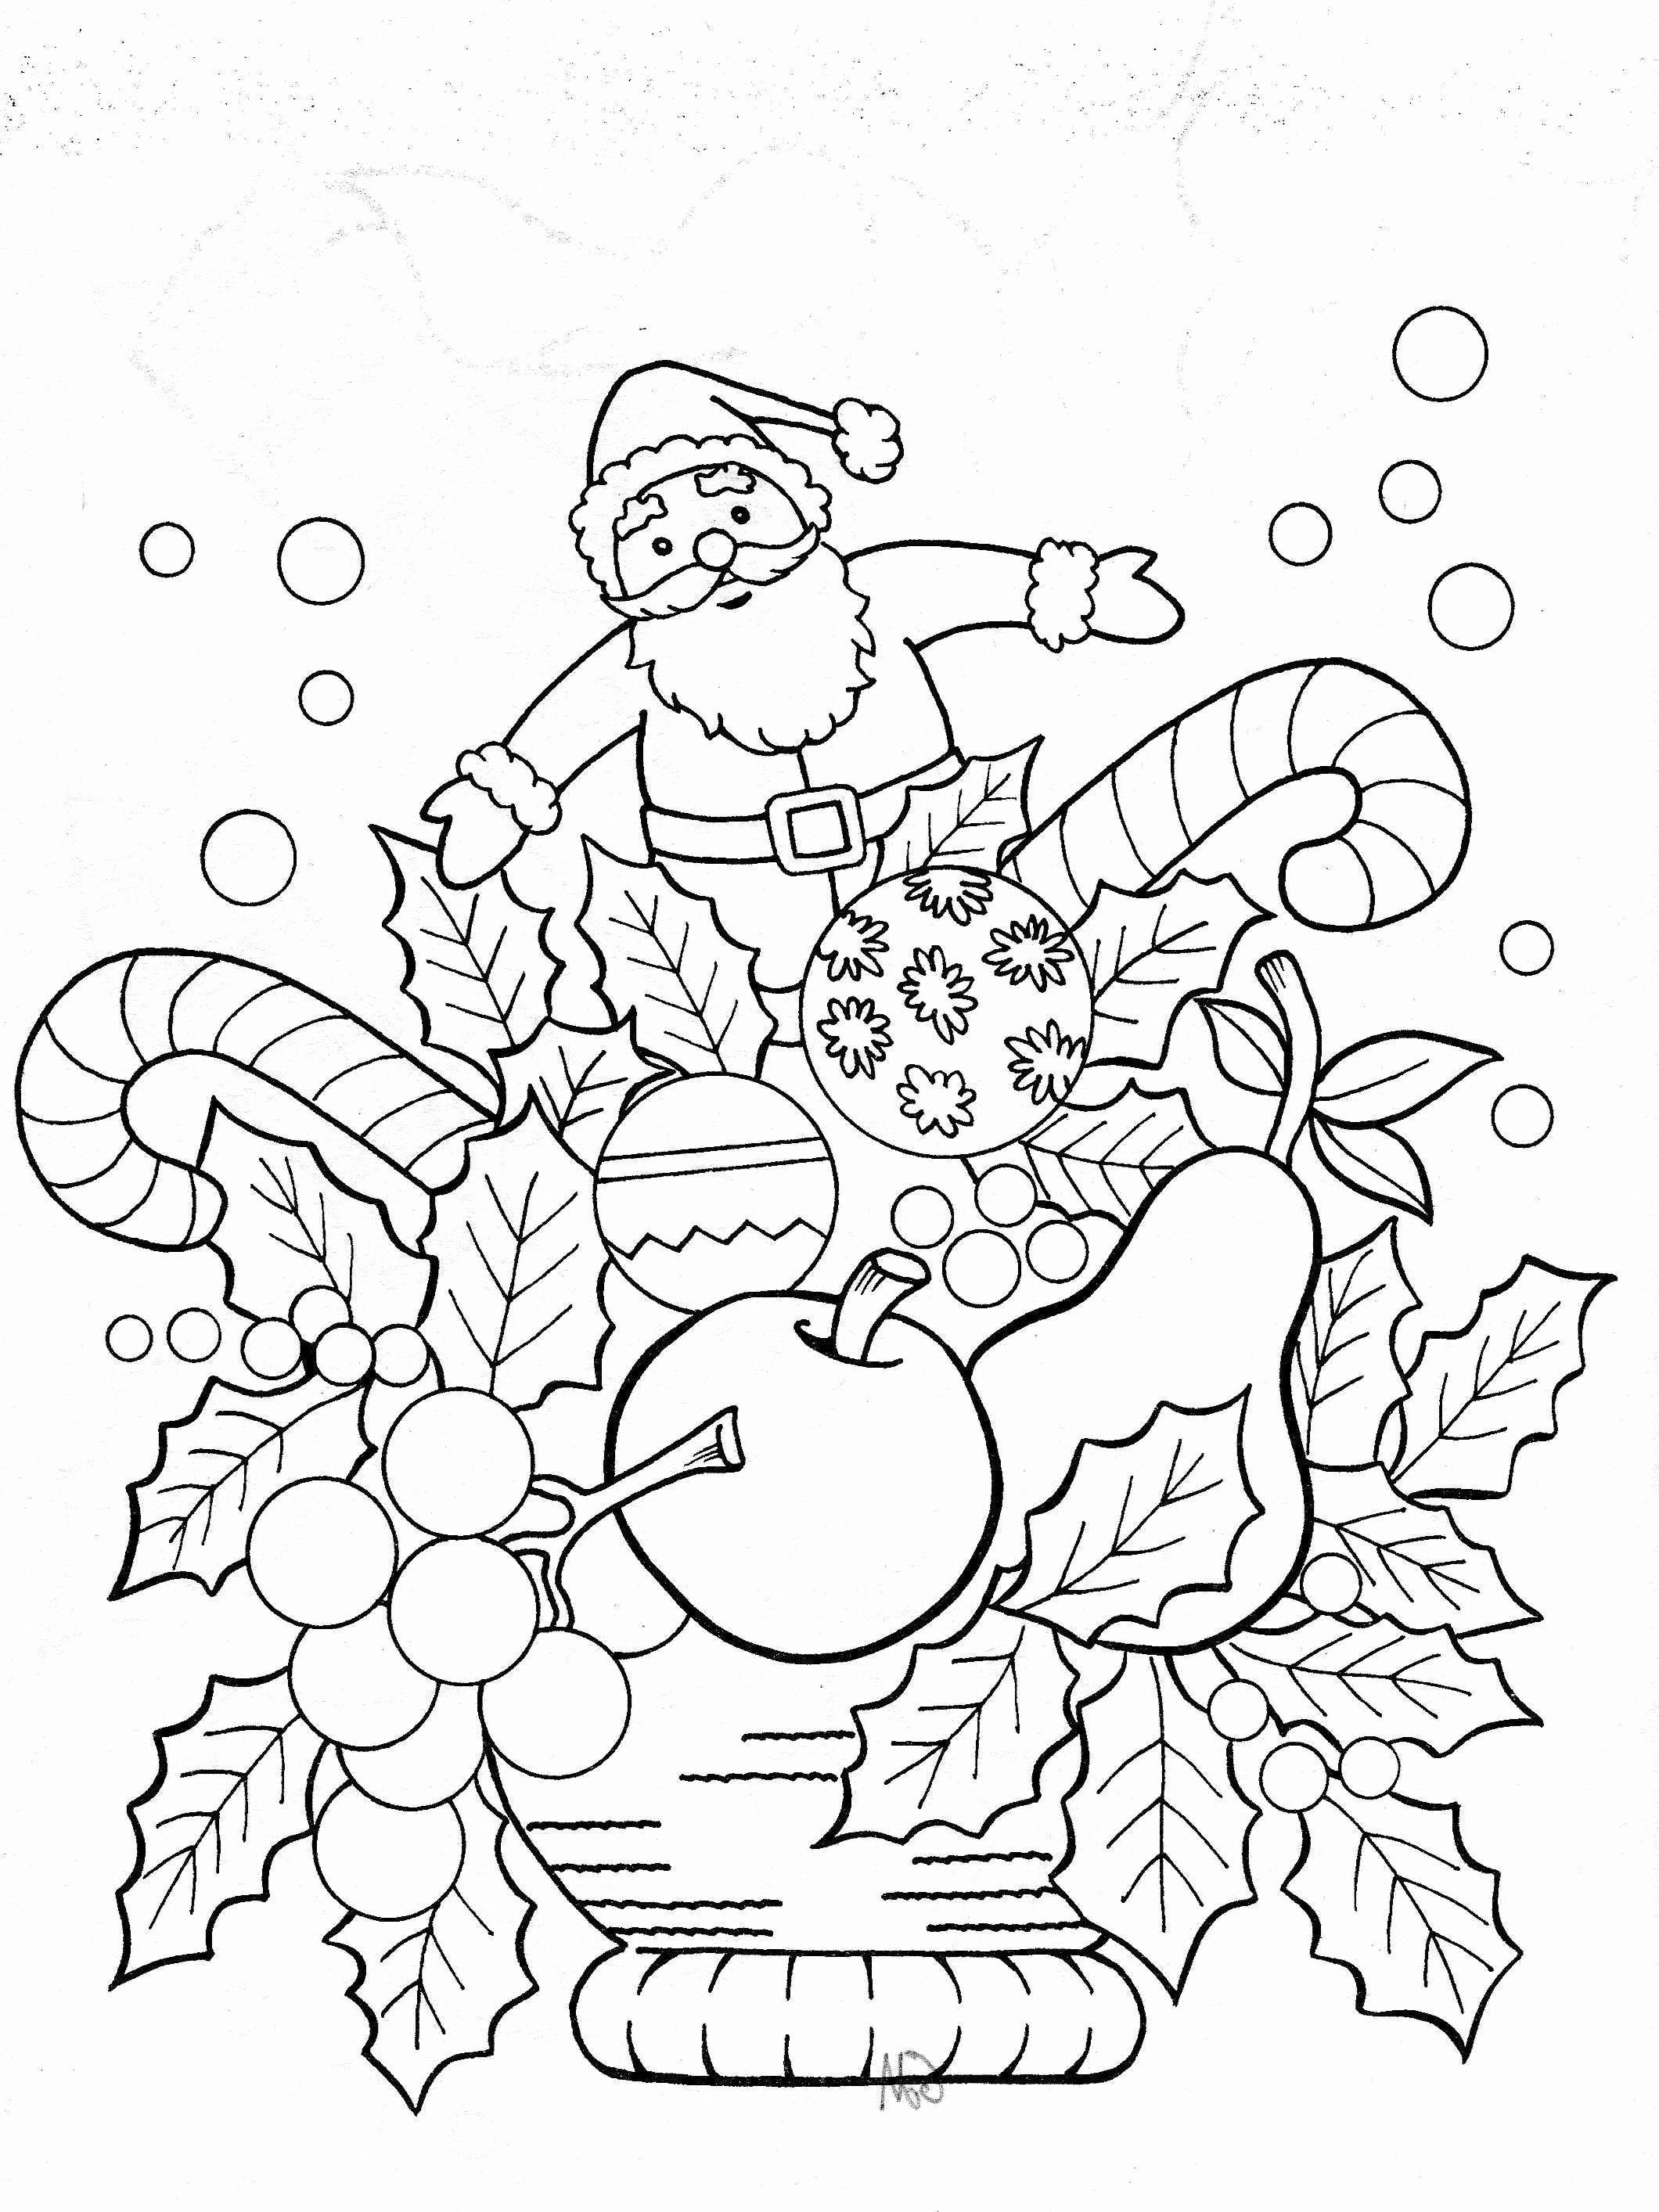 Holiday Coloring Sheets For Preschoolers Best Of Christmas Coloring Pages For Printable New Cool Fall Coloring Pages Summer Coloring Pages Santa Coloring Pages